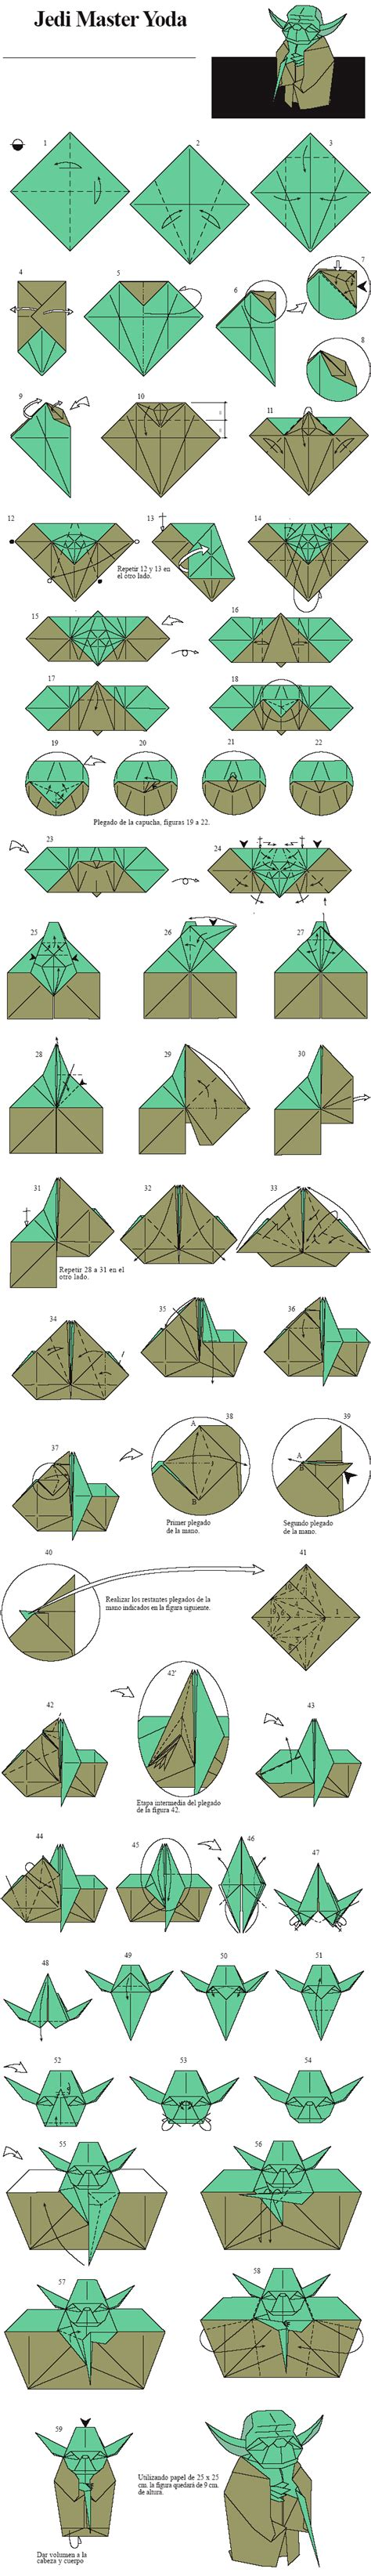 How To Make Origami Yoda - origami jedi master yoda designed by fumiaki kawahata